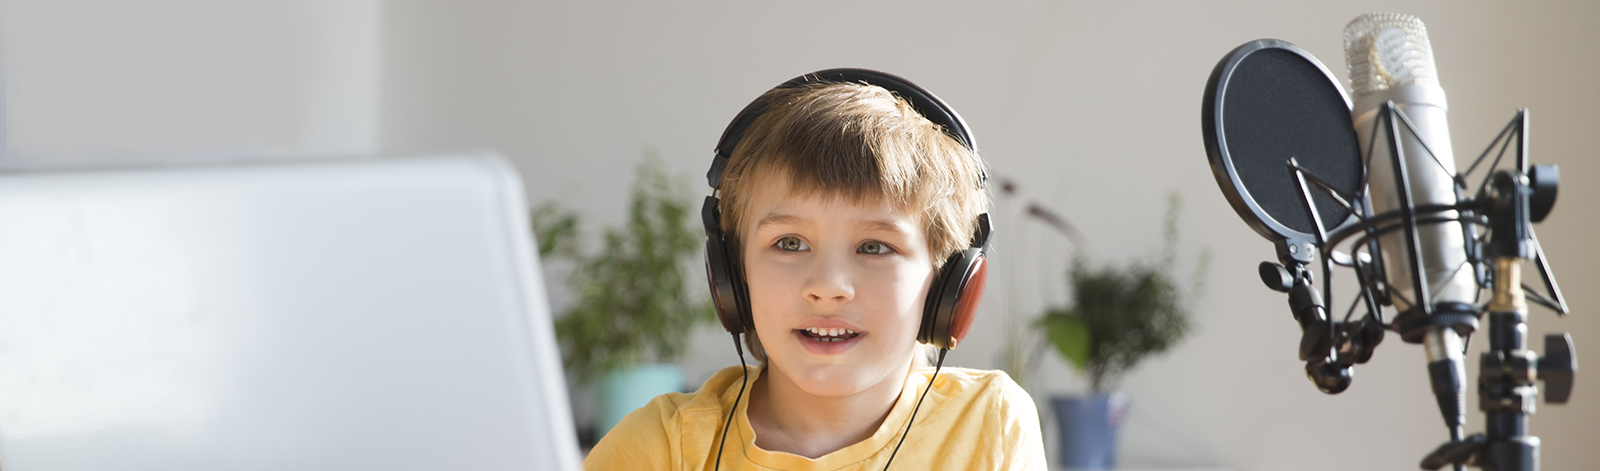 Young boy listening with headphones next to podcast equipment